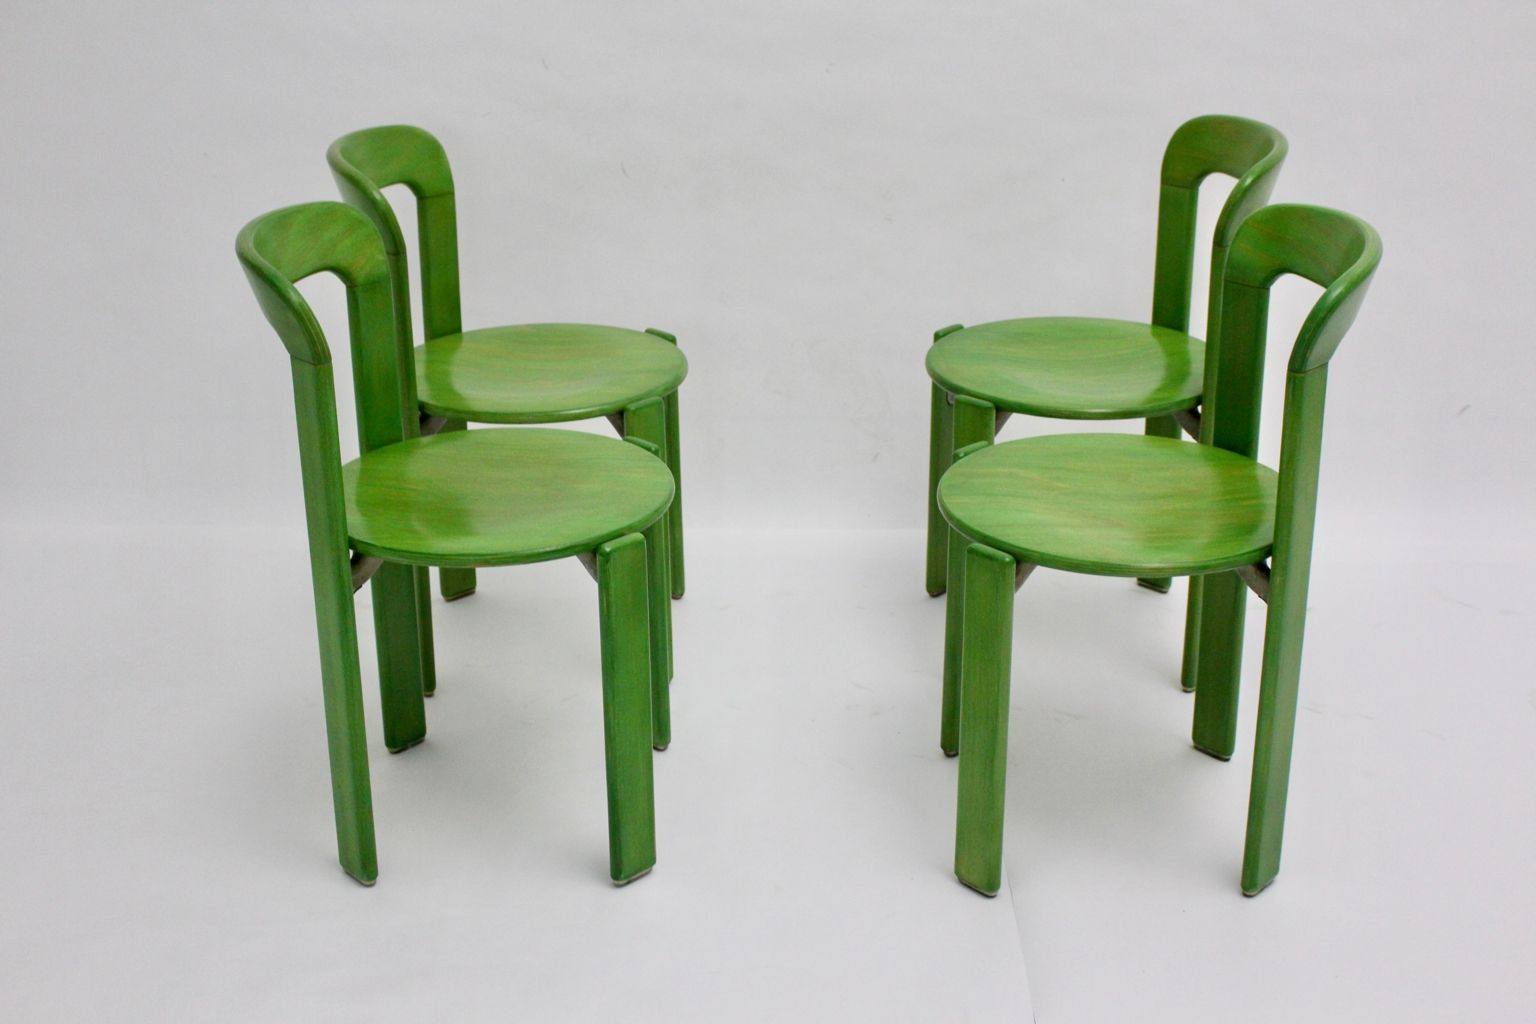 price per set. green dining chairs by bruno rey for kusch  co s set of